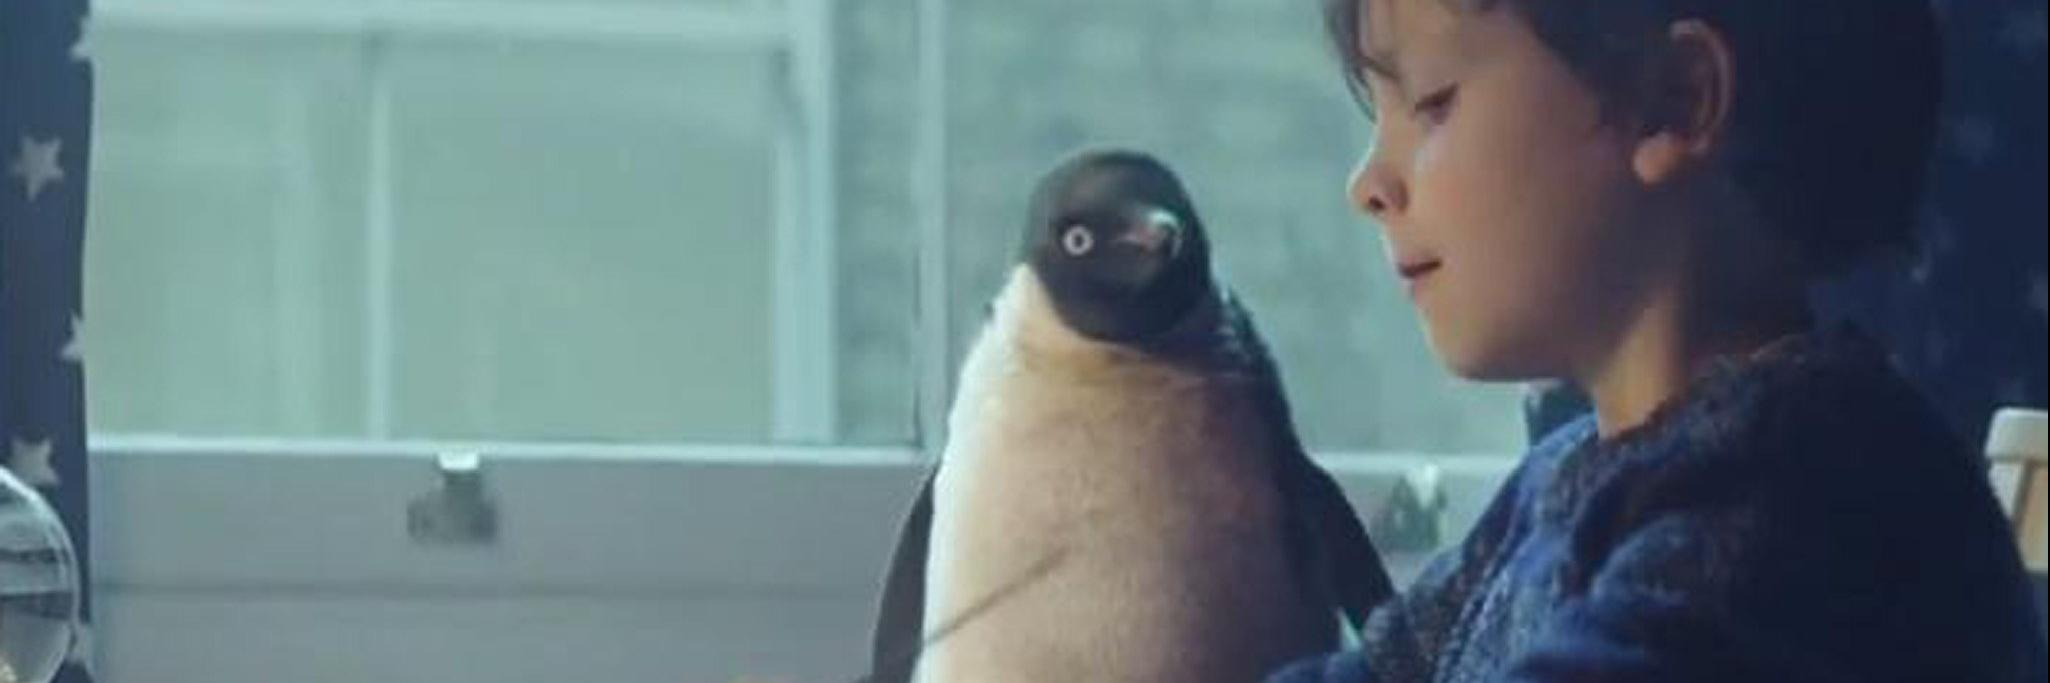 John Lewis Christmas Advert 2019.Why John Lewis Monty The Penguin Christmas Campaign Was